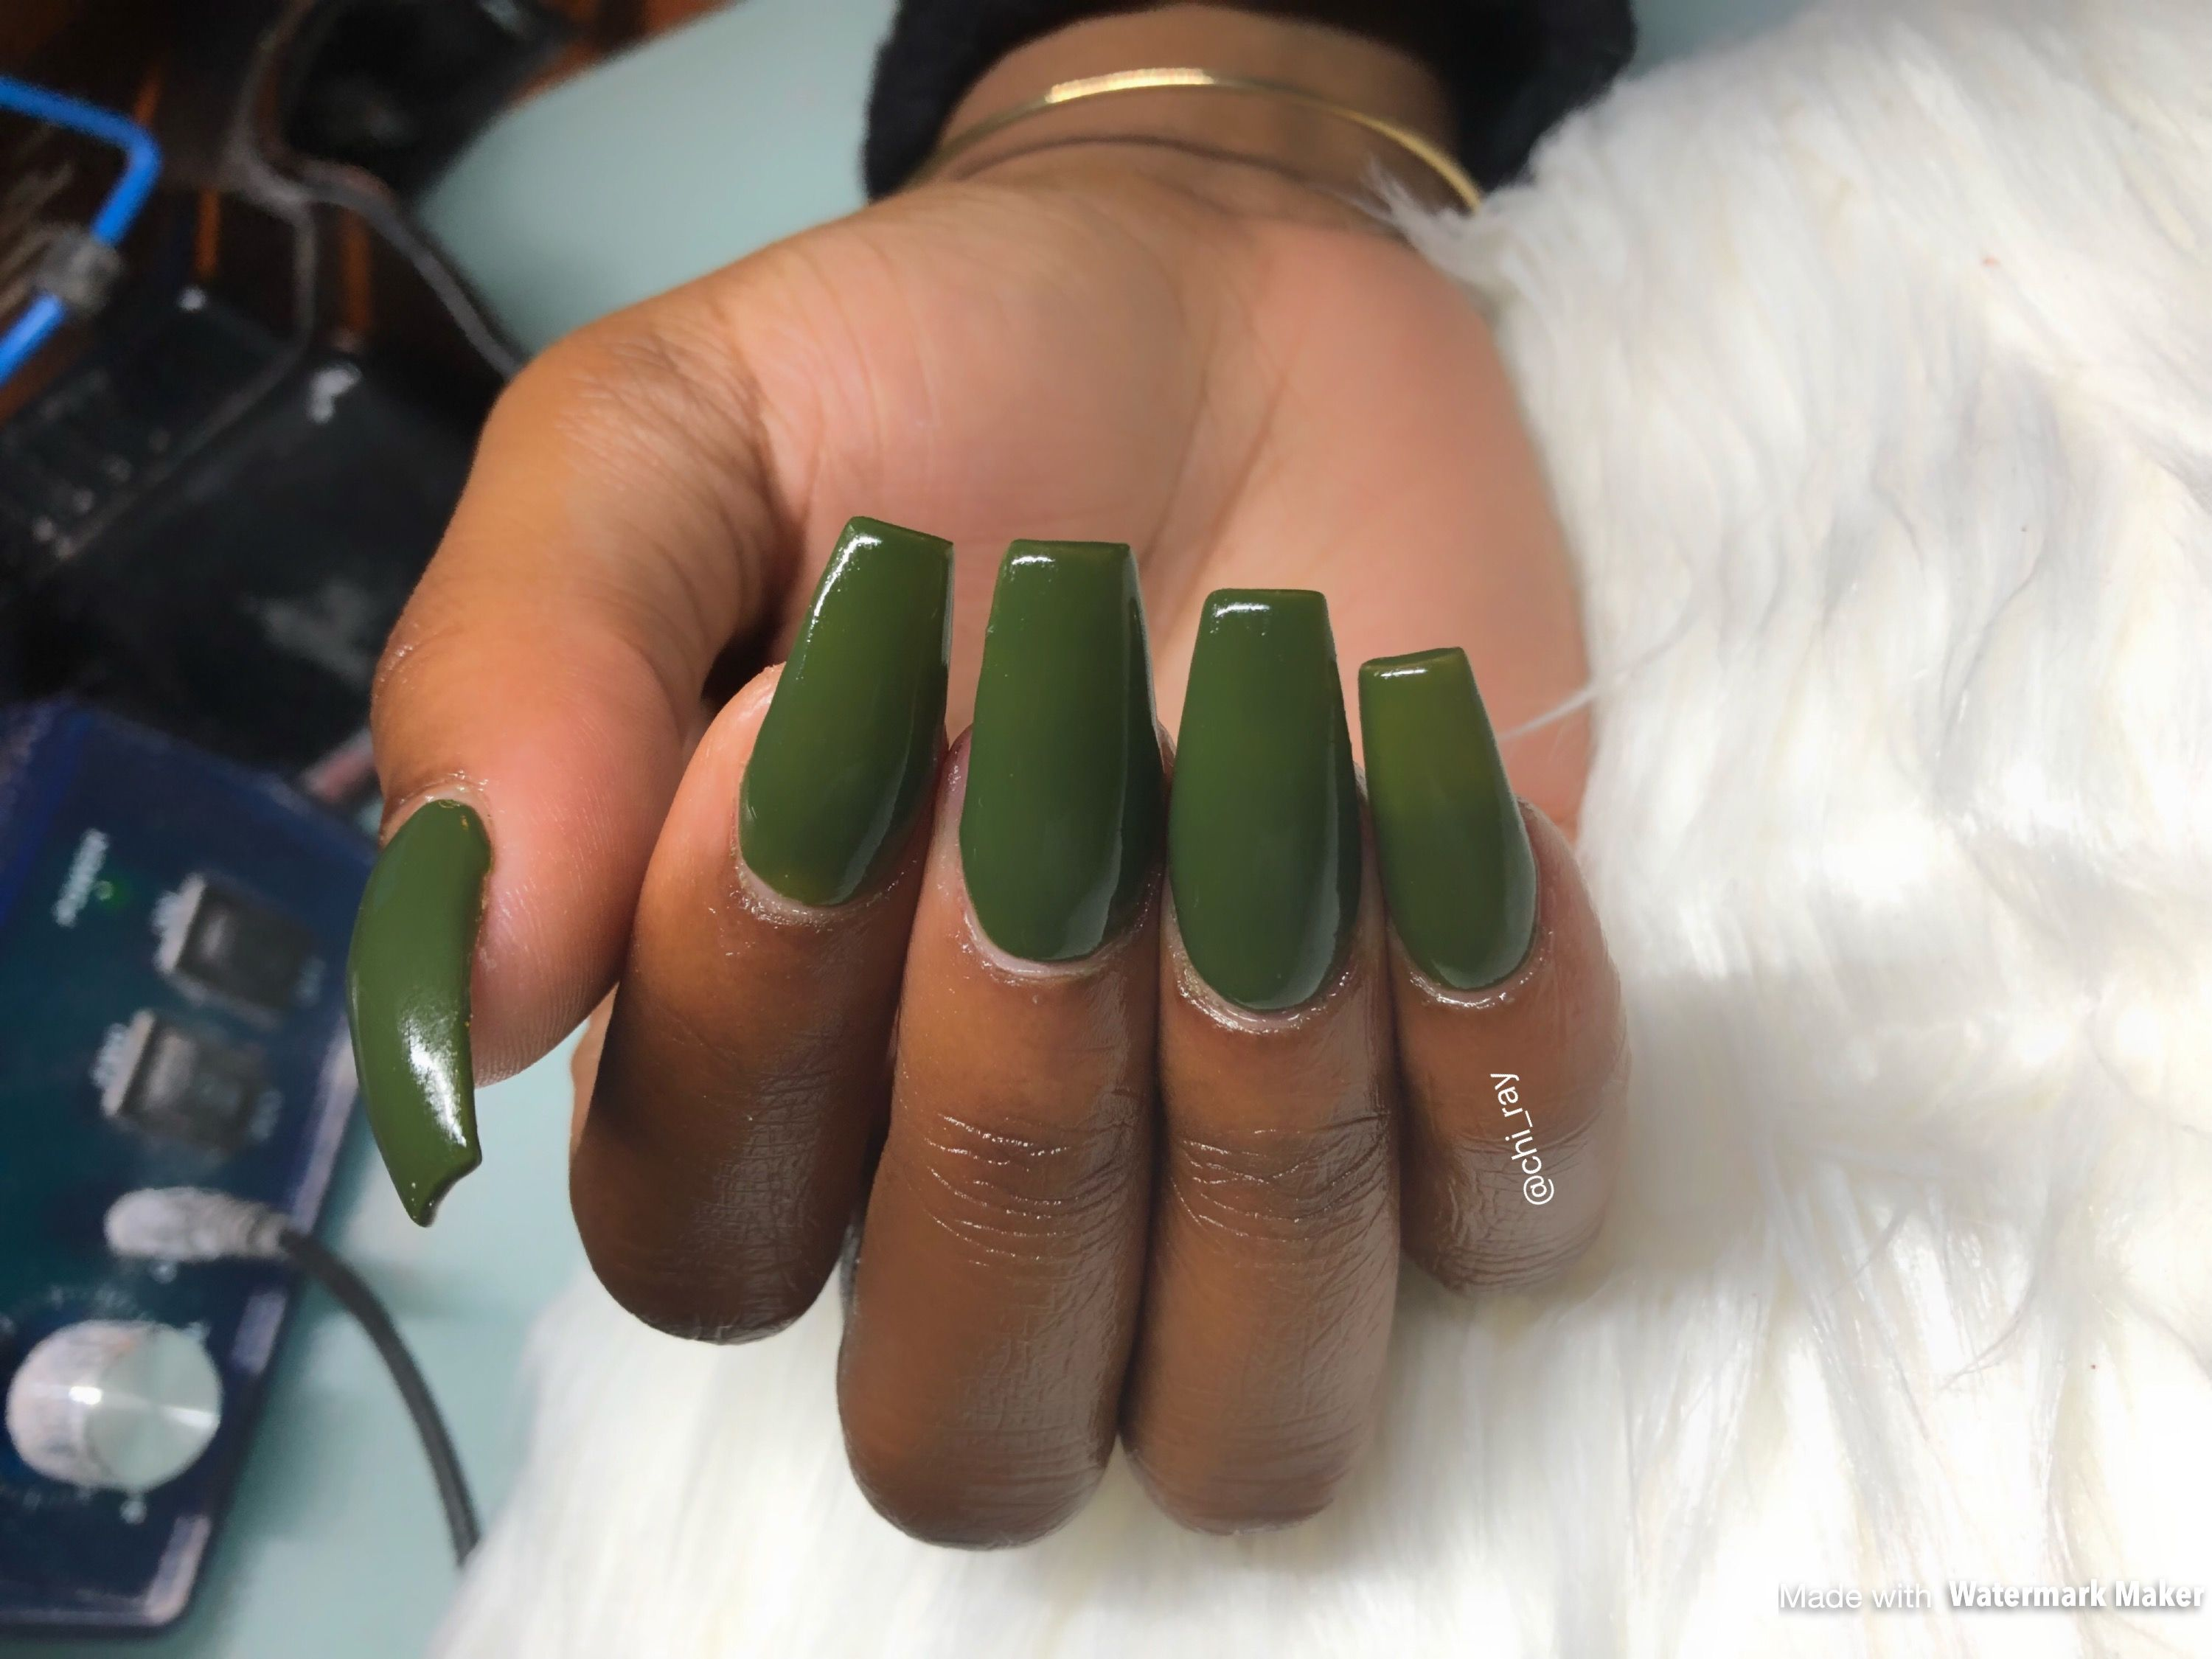 Long Nails Tapered Square Coffin Nails Green Nails Olive Forest Green Holidays Glam Paintobsessed Ig Short Square Acrylic Nails Long Square Nails Green Nails